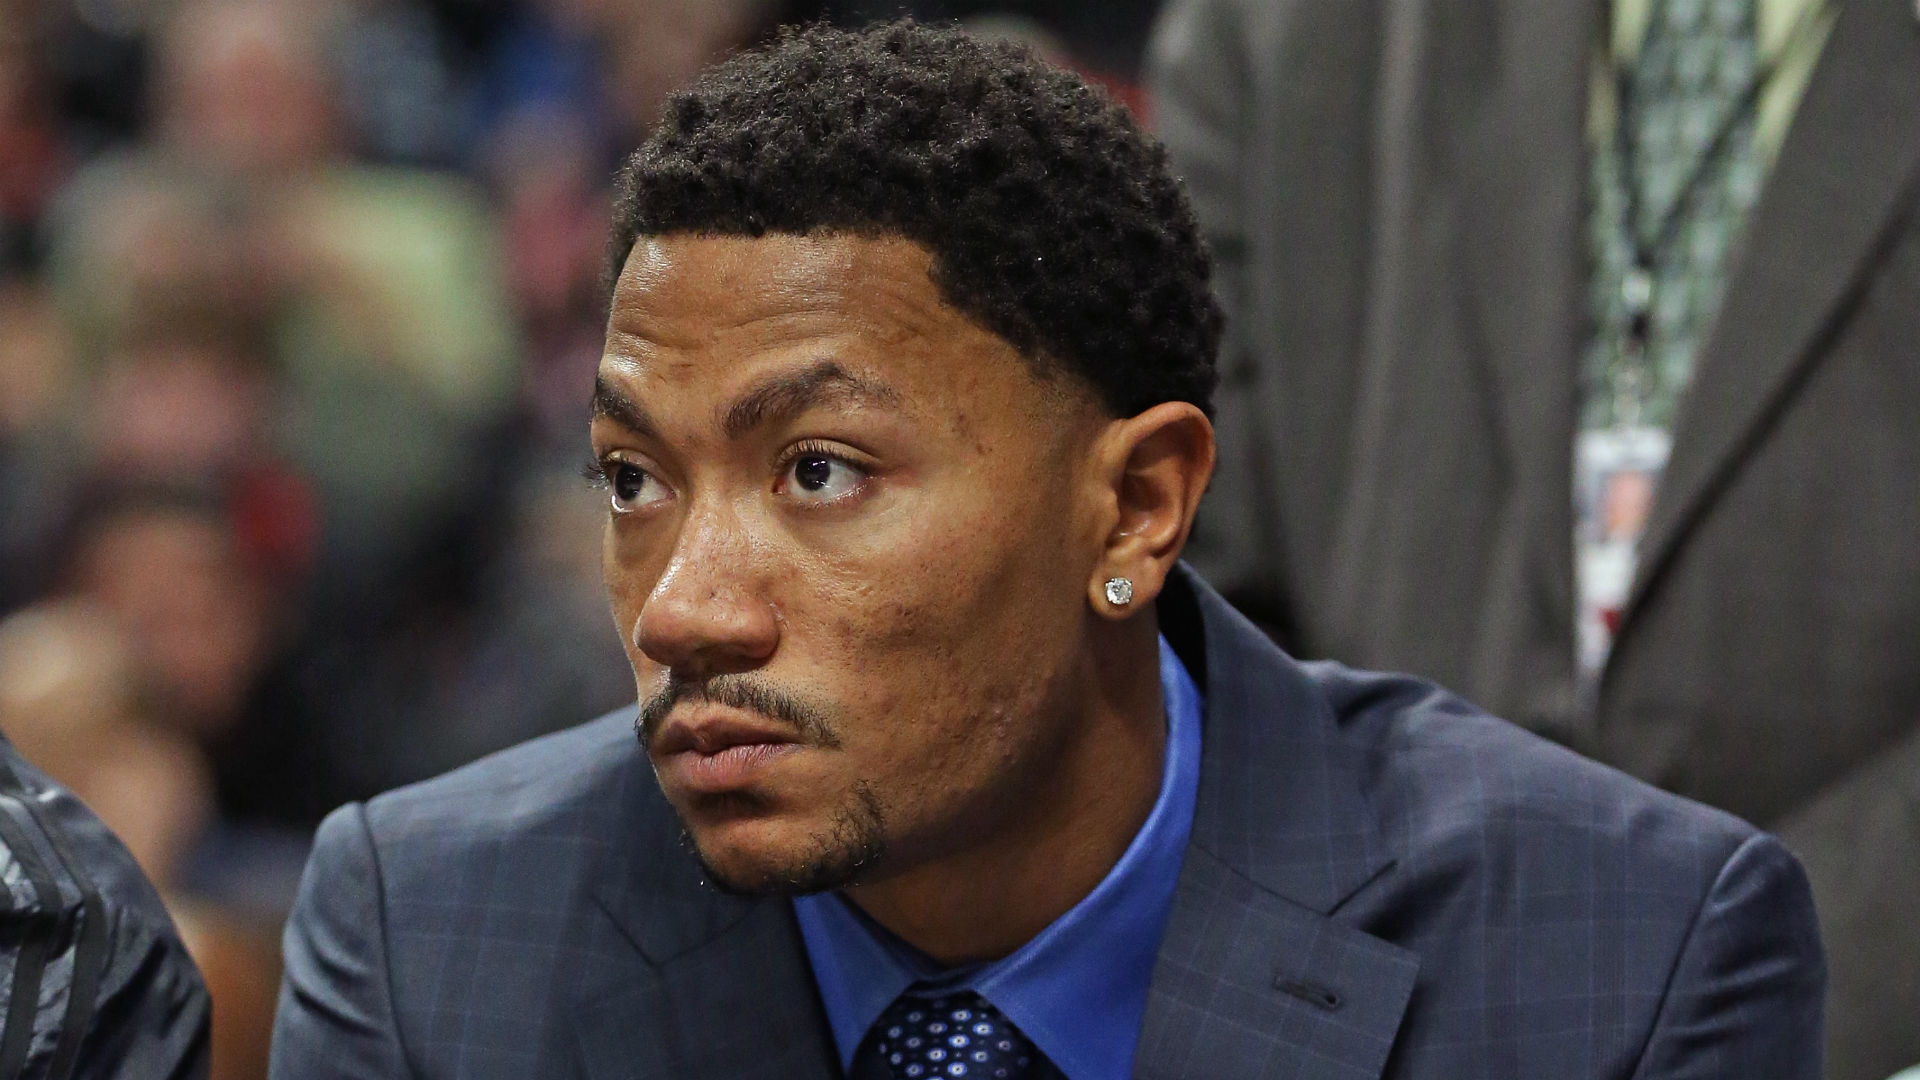 Judge Orders Derrick Rose's Sexual Assault Accuser To Reveal Her Name Publicly